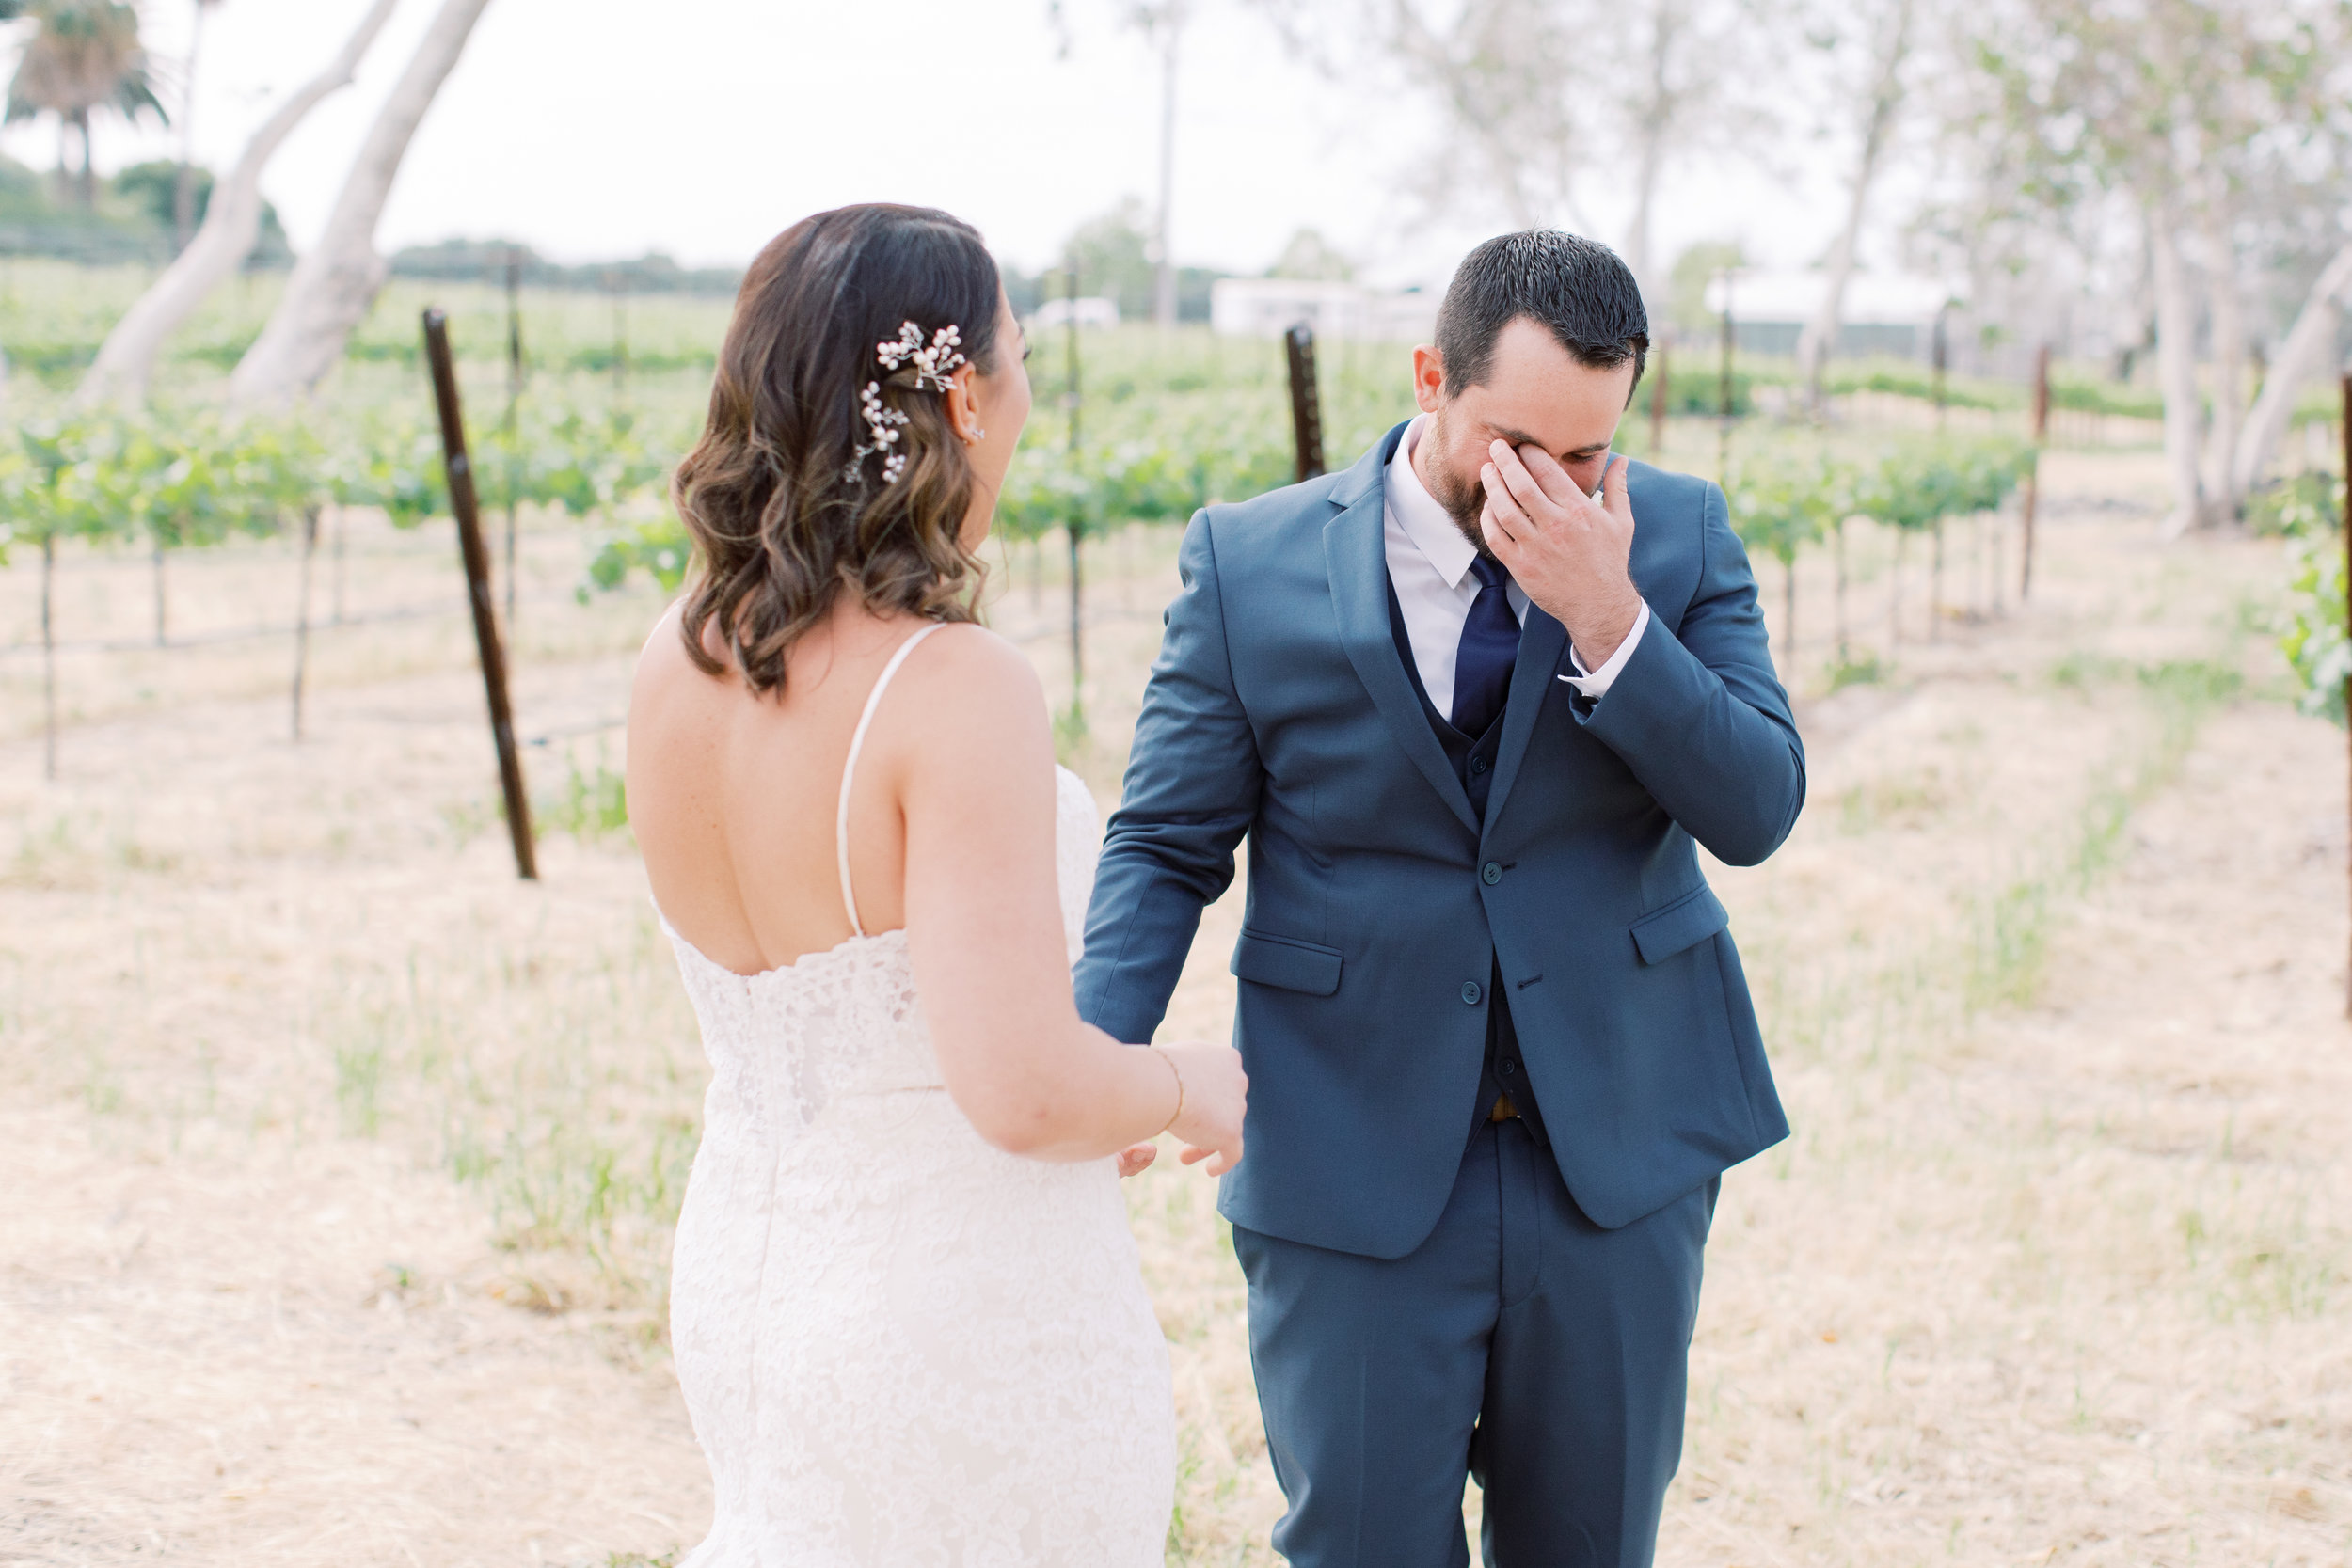 Muriettas-well-livermore-wedding-kristine-herman-photography-5.jpg